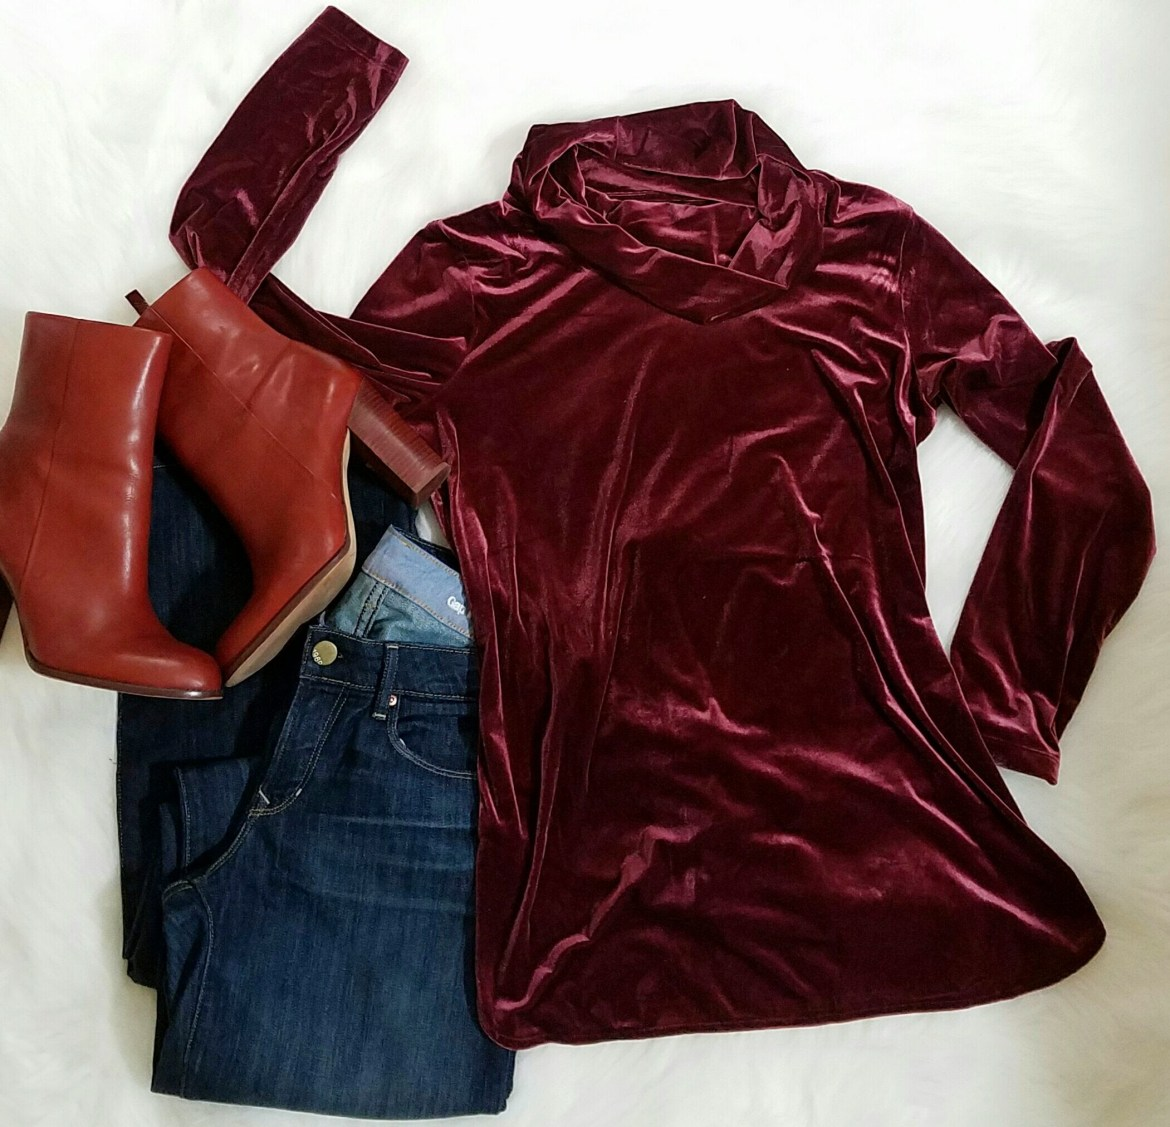 Gosh that velvet top is everything.